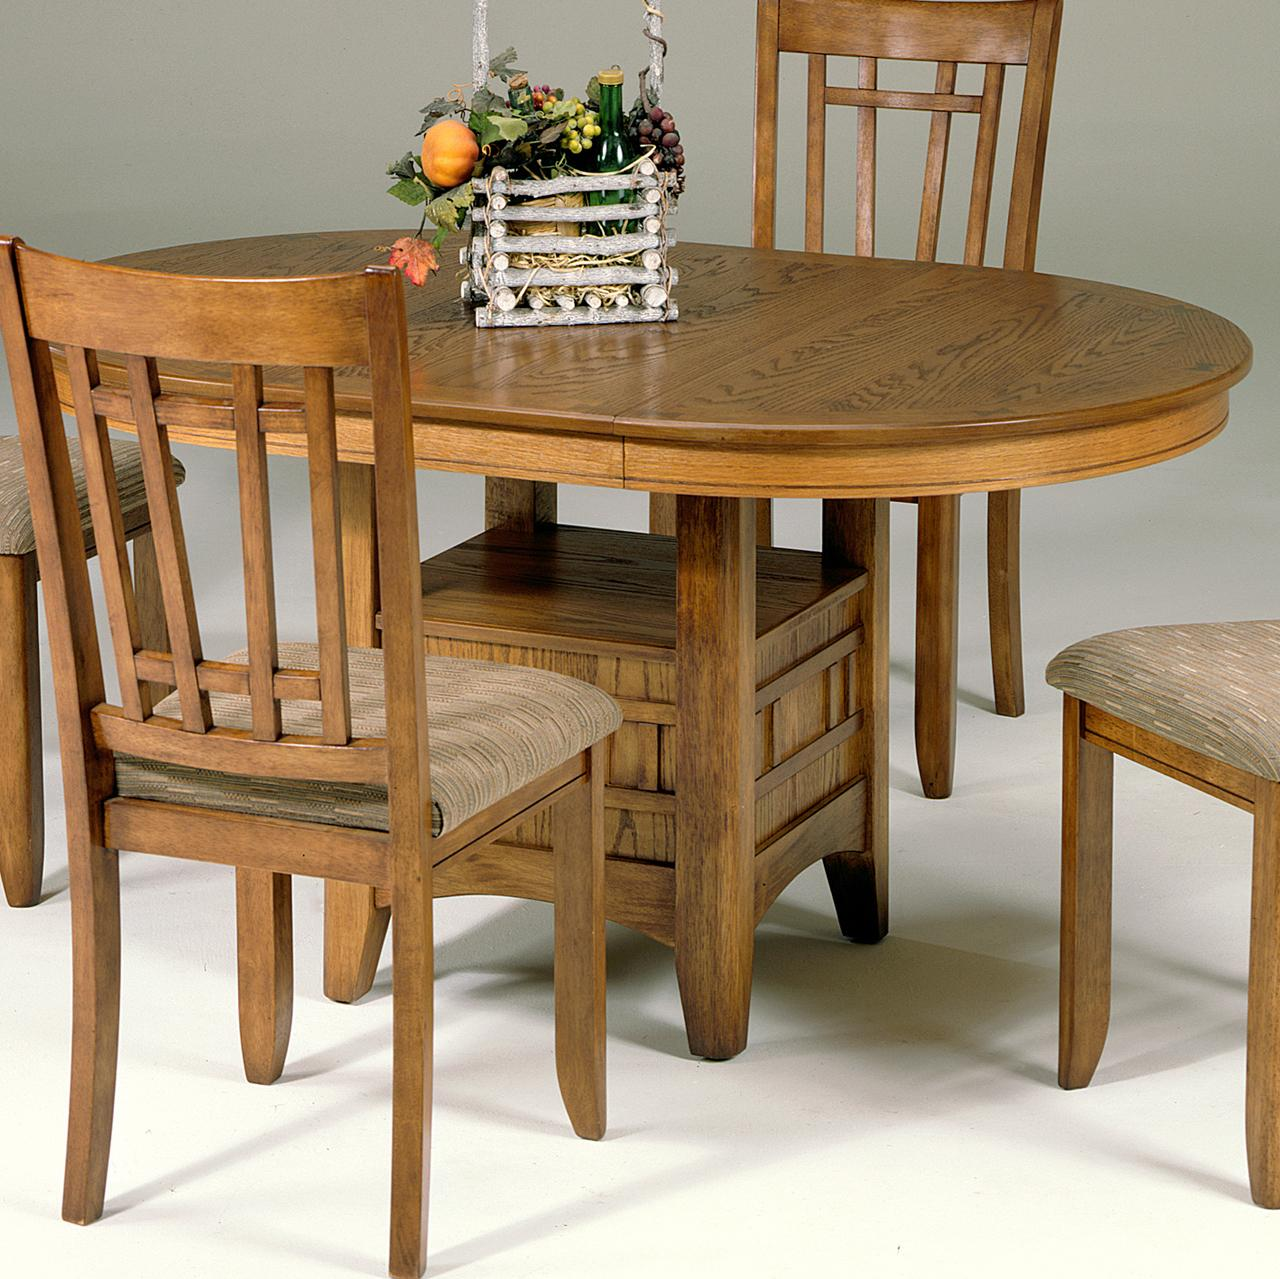 Kitchen Table With Storage Base Gallery Bar Height